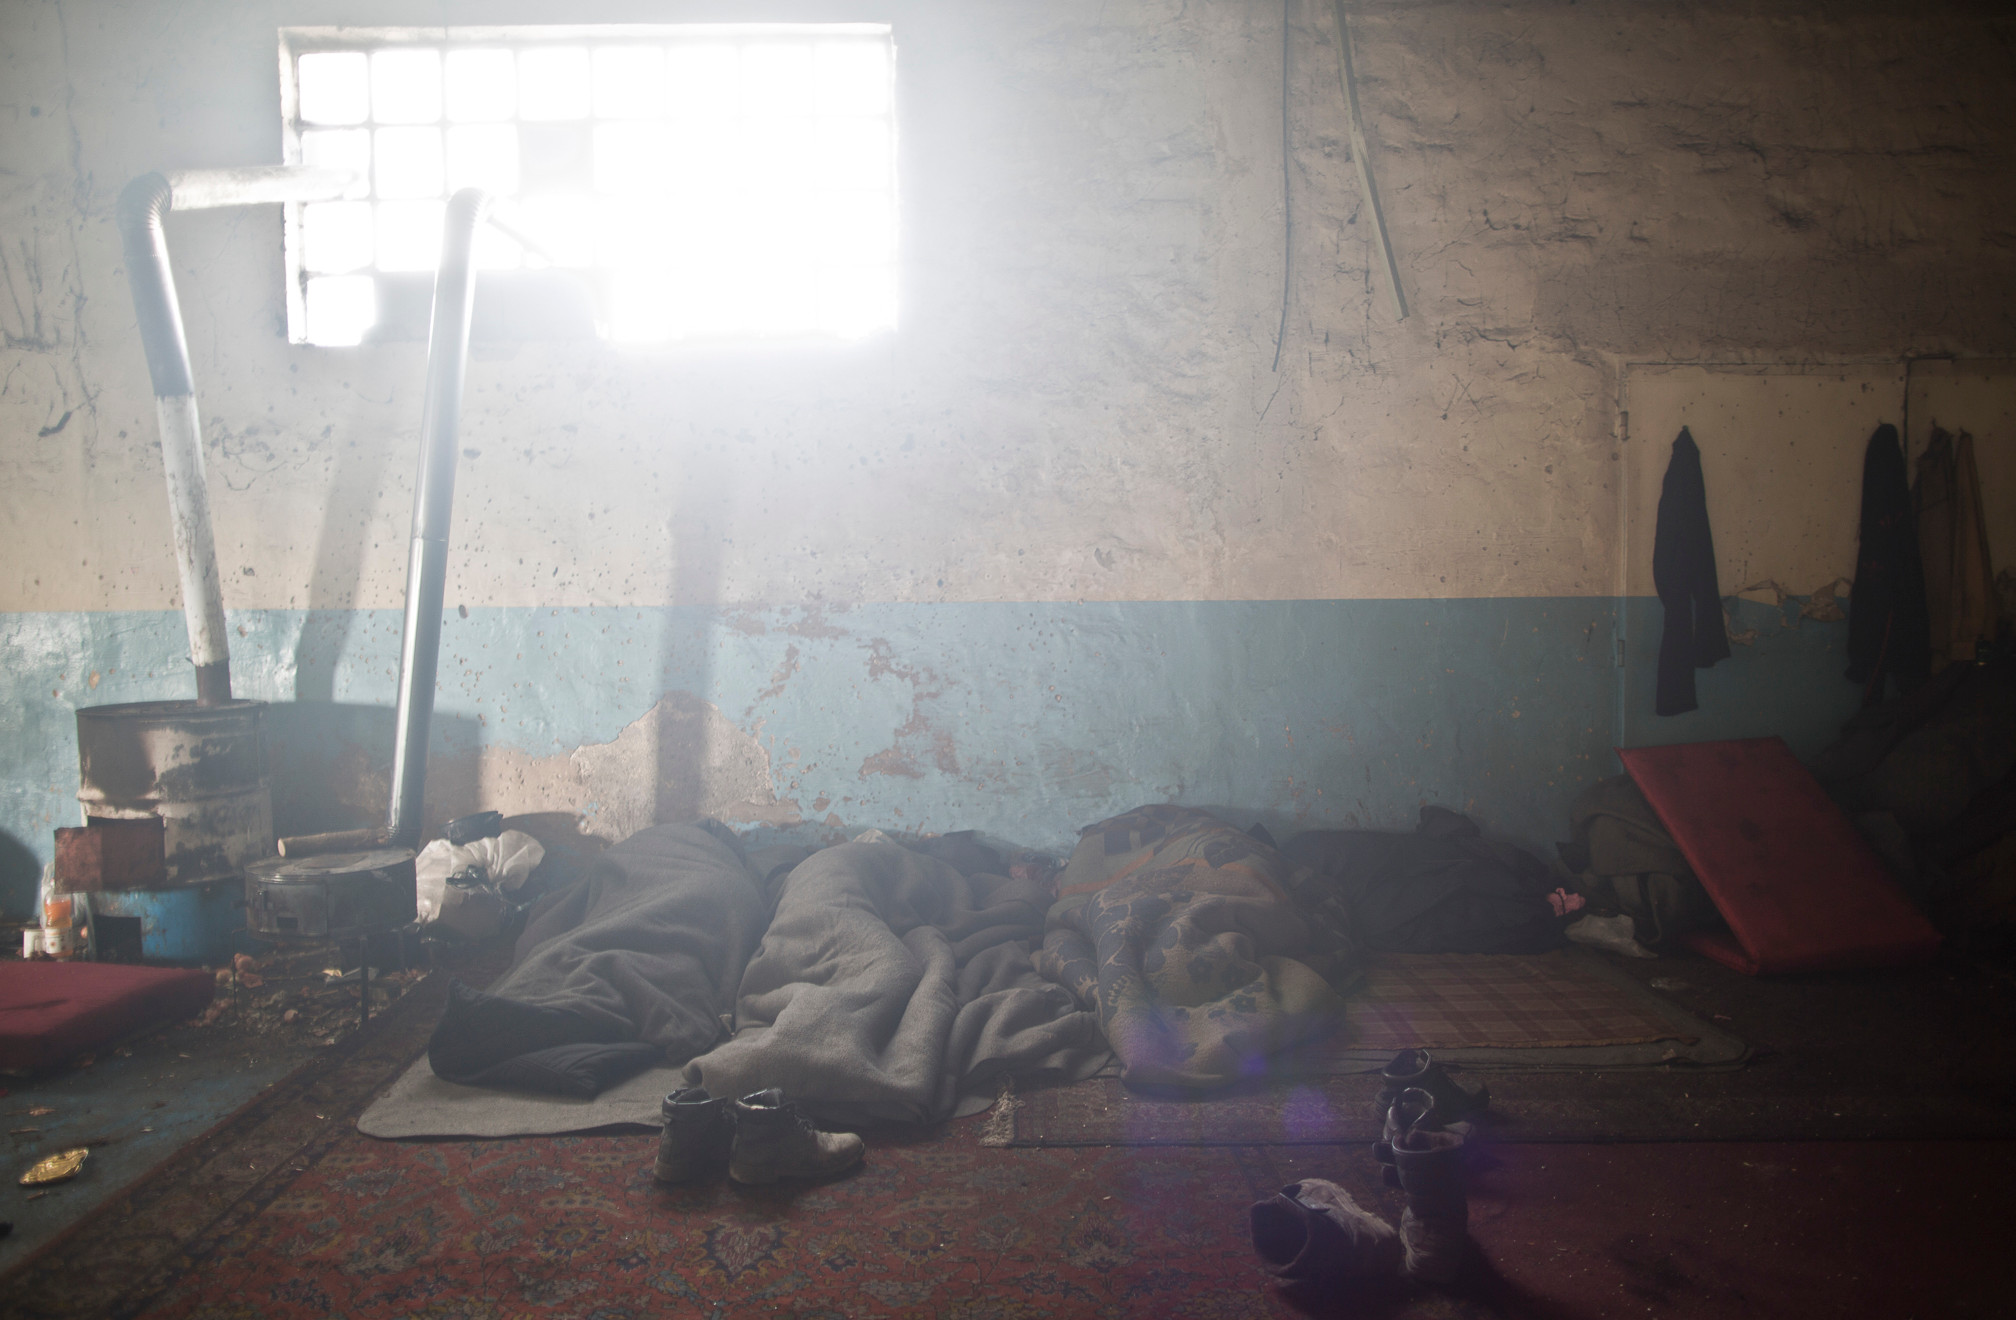 A group of migrants sleep on the ground of an abandoned warehouse where they took shelter in Belgrade, Serbia. February 16, 2107.